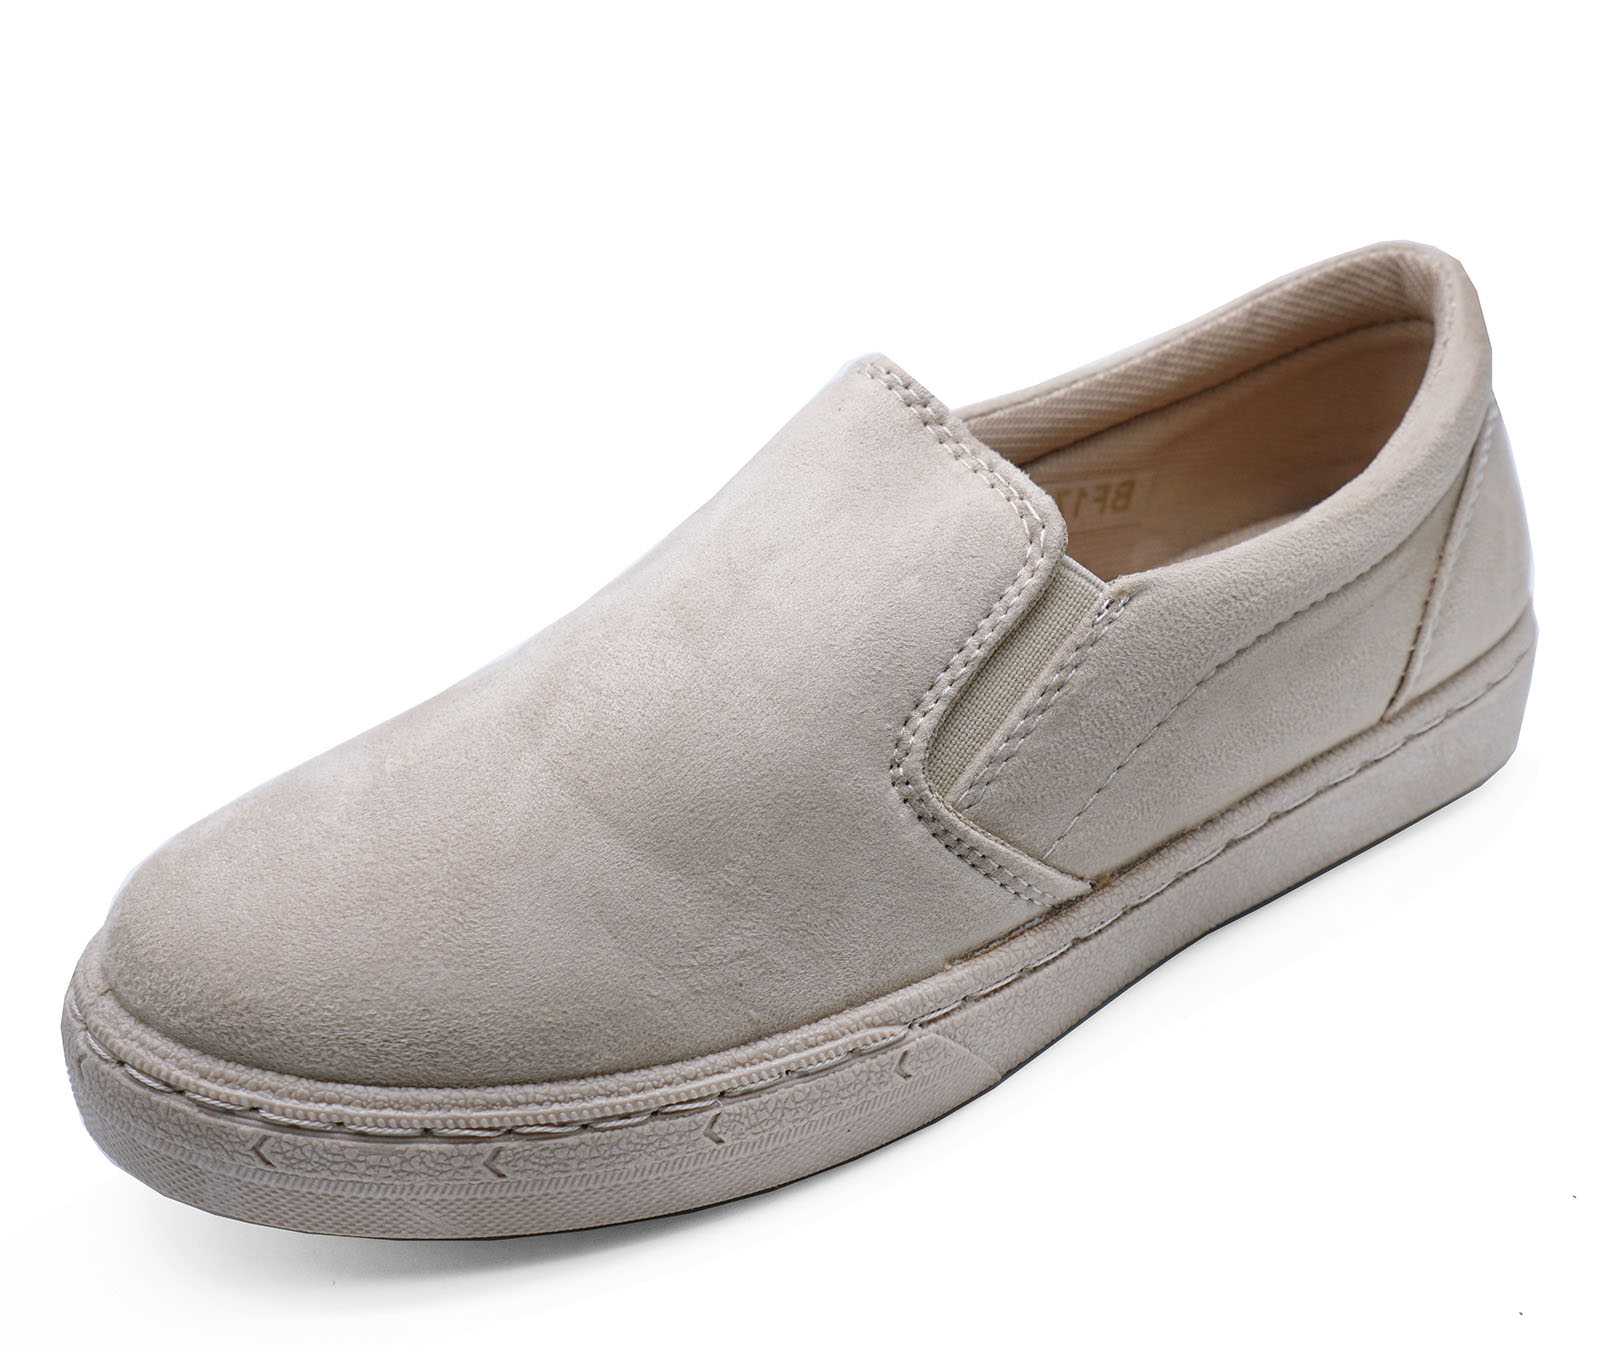 05b982b78a6 Sentinel LADIES BEIGE FLAT SLIP-ON PLIMSOLL PUMPS CASUAL COMFY LOAFERS  TRAINERS SHOES 3-8